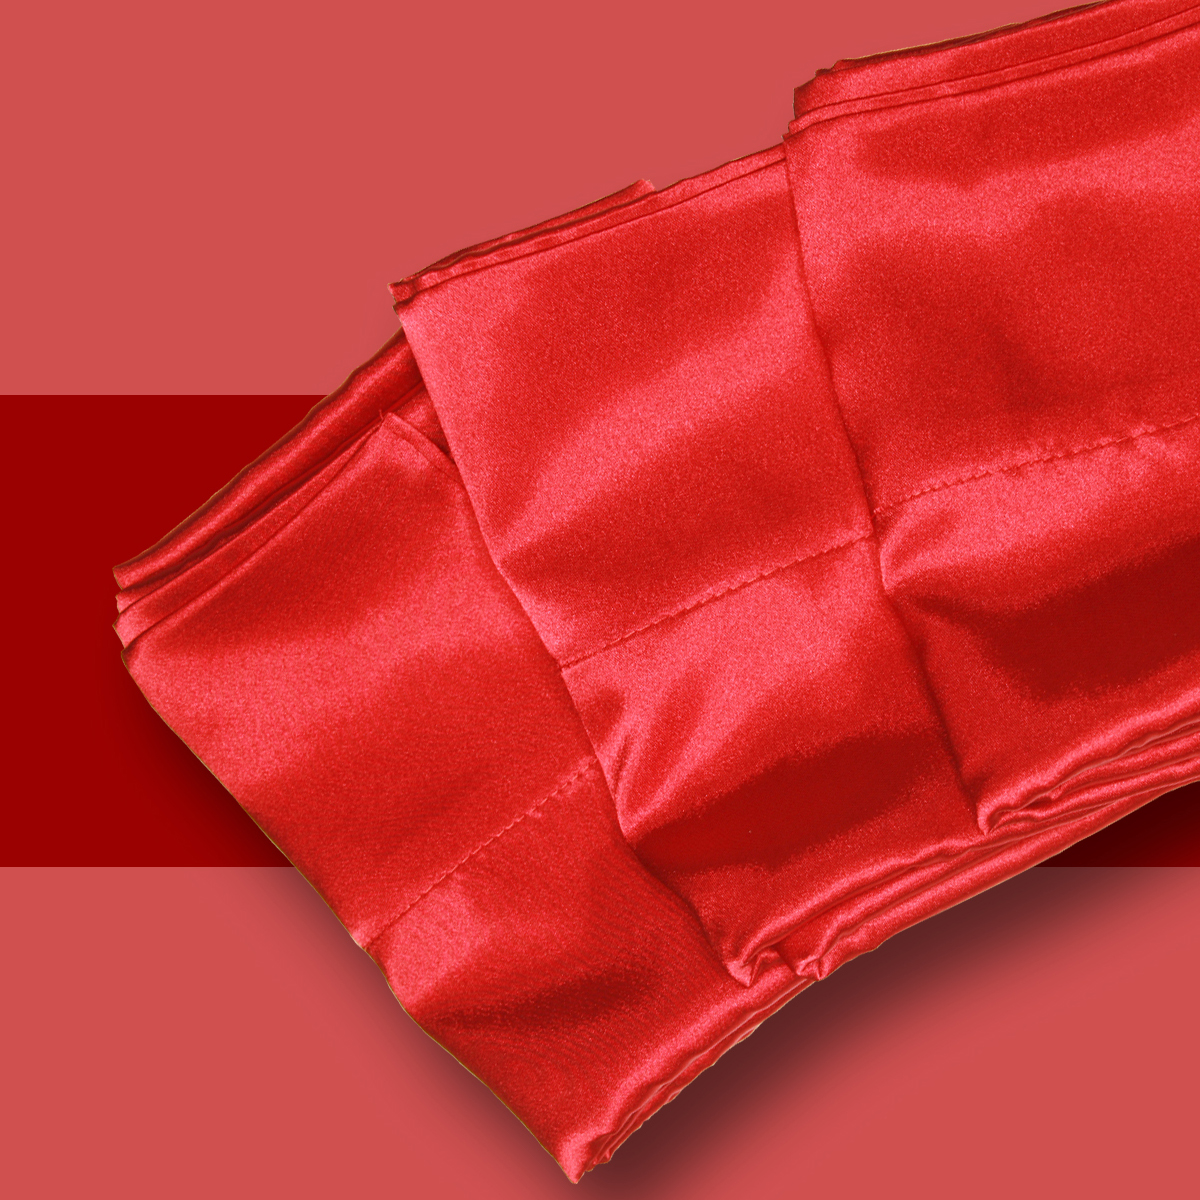 Pillow Case Preview Red